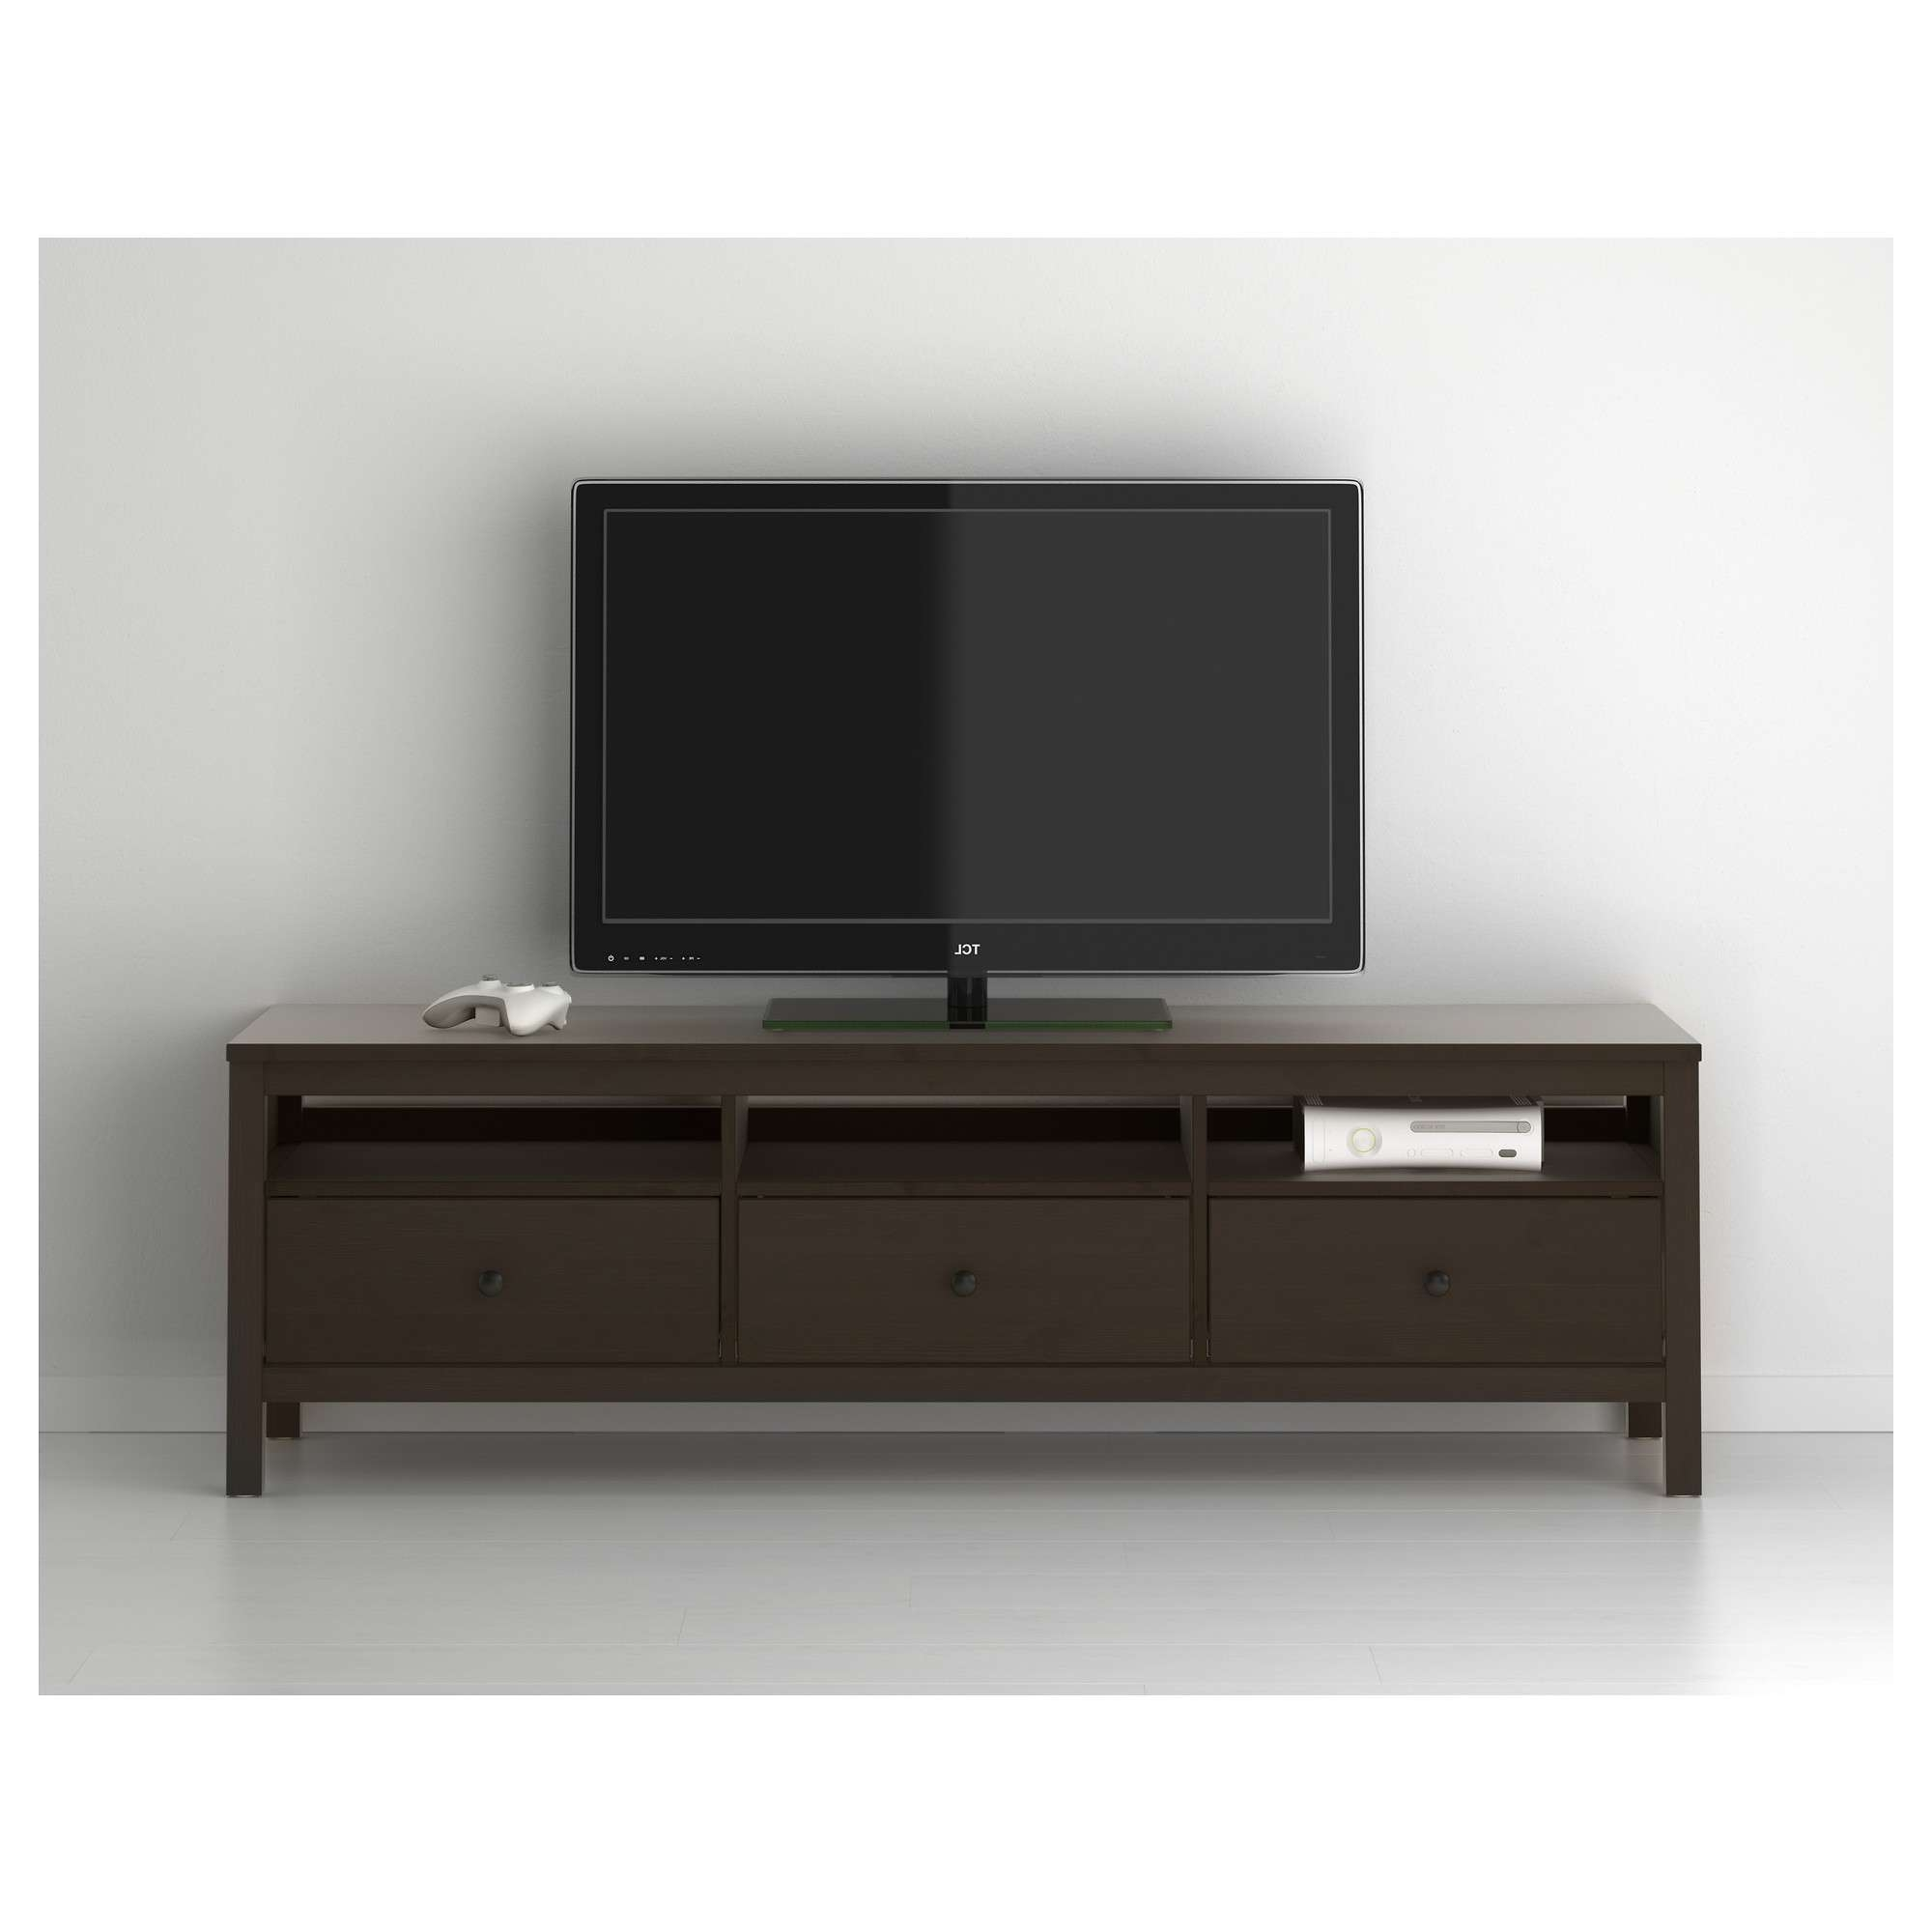 Tv Stands Ik ~ Theshaggsonline Within Bench Tv Stands (View 15 of 15)